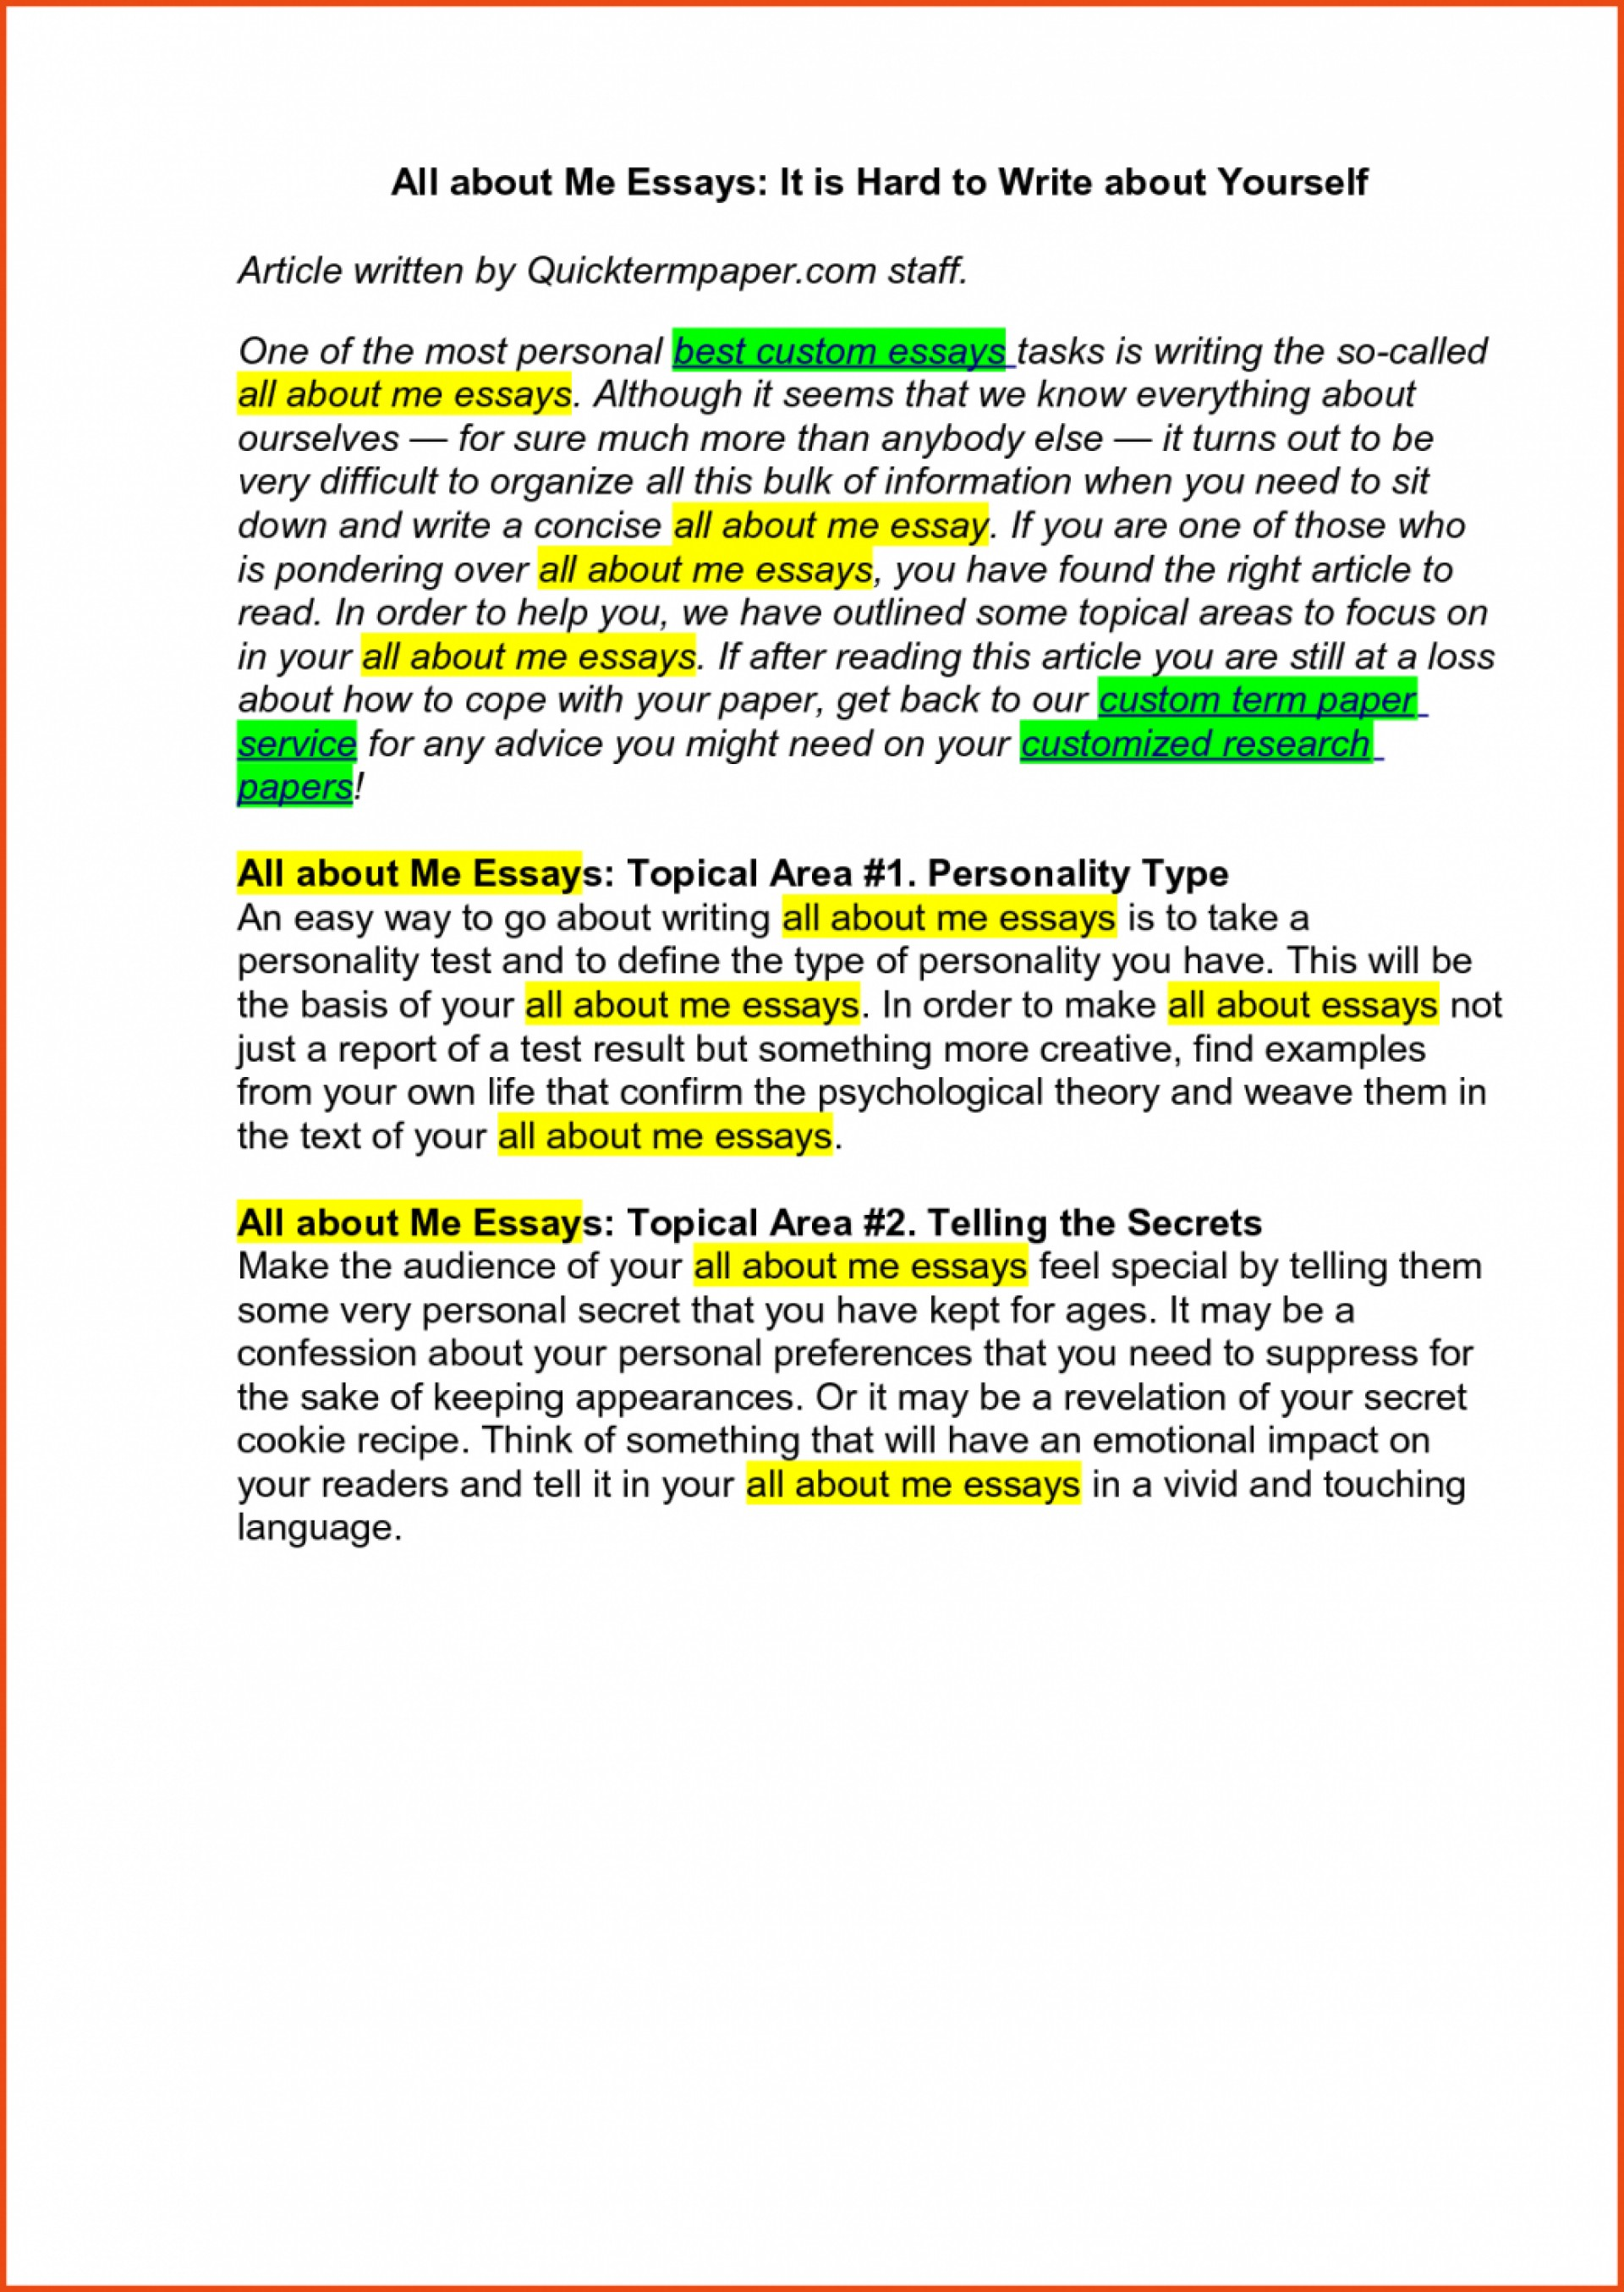 006 Essay Example Sample College Admissions Good Mba Essays School Application About Yourself For Examples Confortable Resume In Admis 1048x1479 Fascinating Write Job 1920